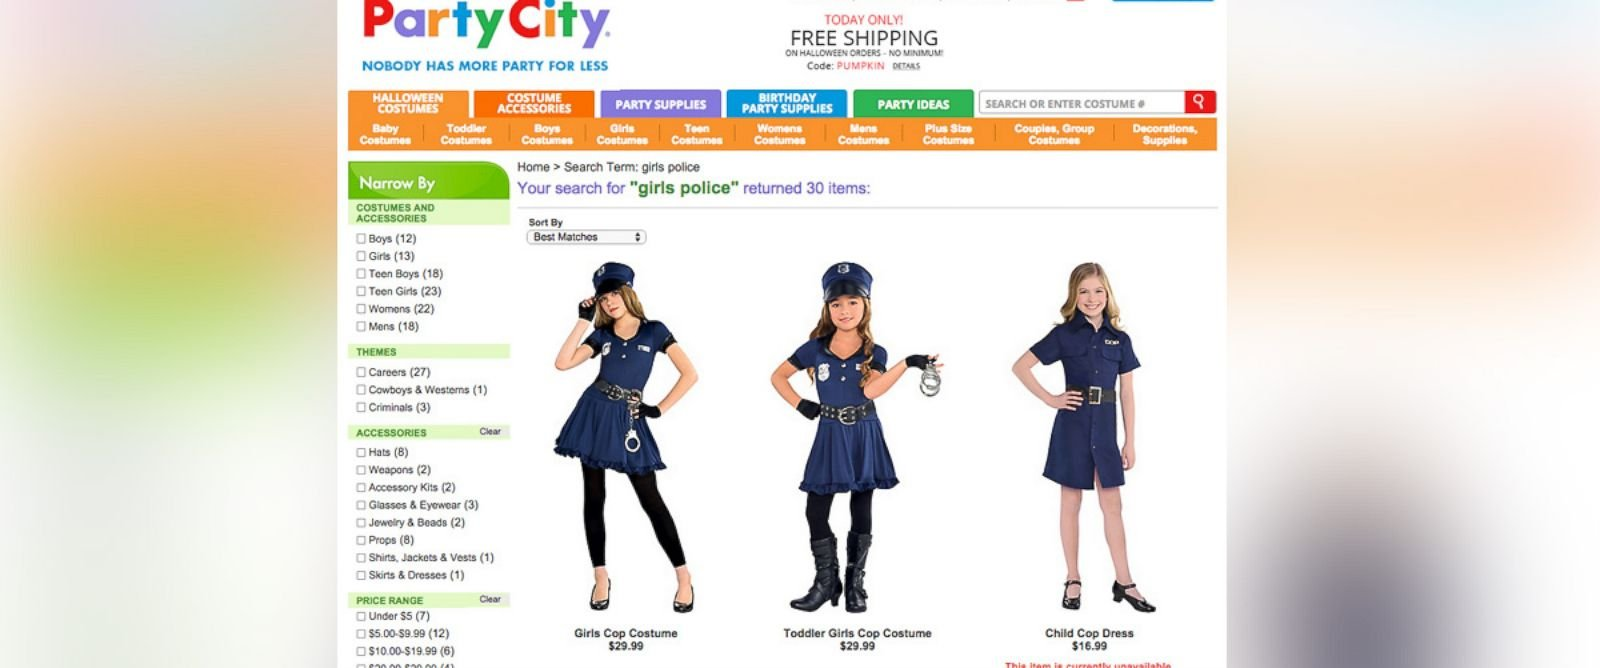 Mom writes open letter to Party City over sexualized costume opt ...